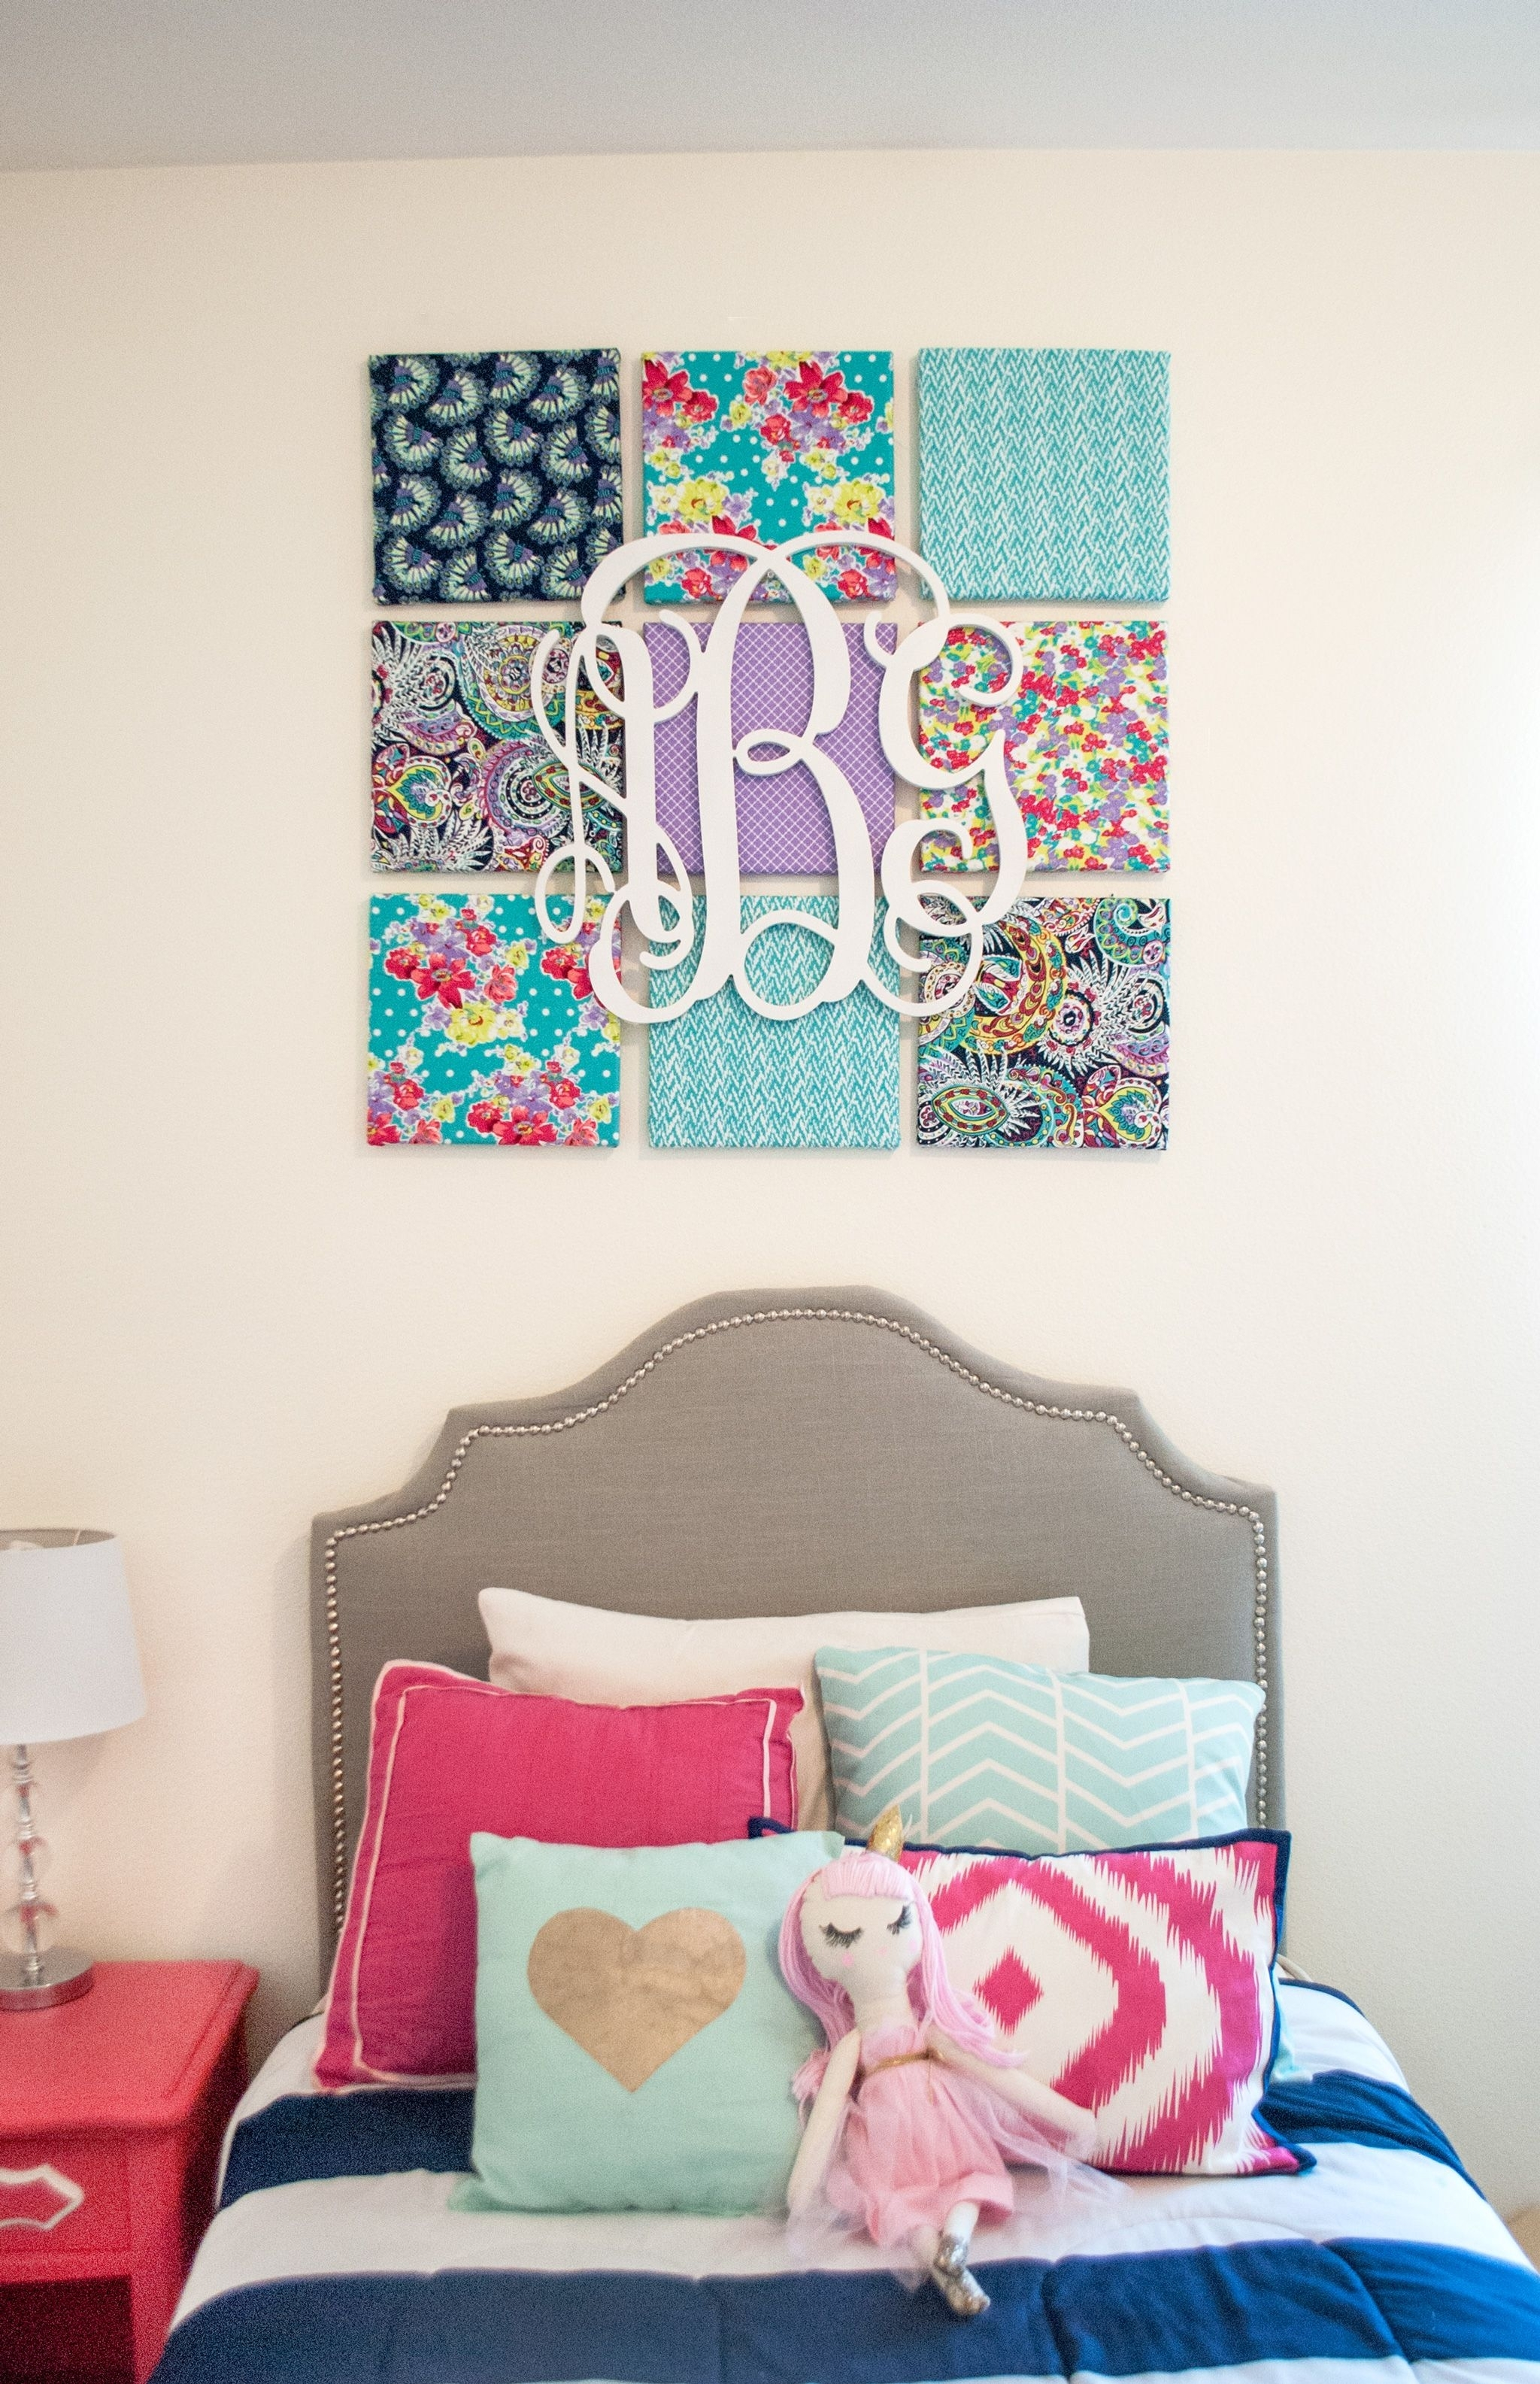 Diy Fabric Wall Art | Monogram Wall, Kids Rooms And Monograms Within Most Up To Date Fabric Decoupage Wall Art (Gallery 2 of 15)